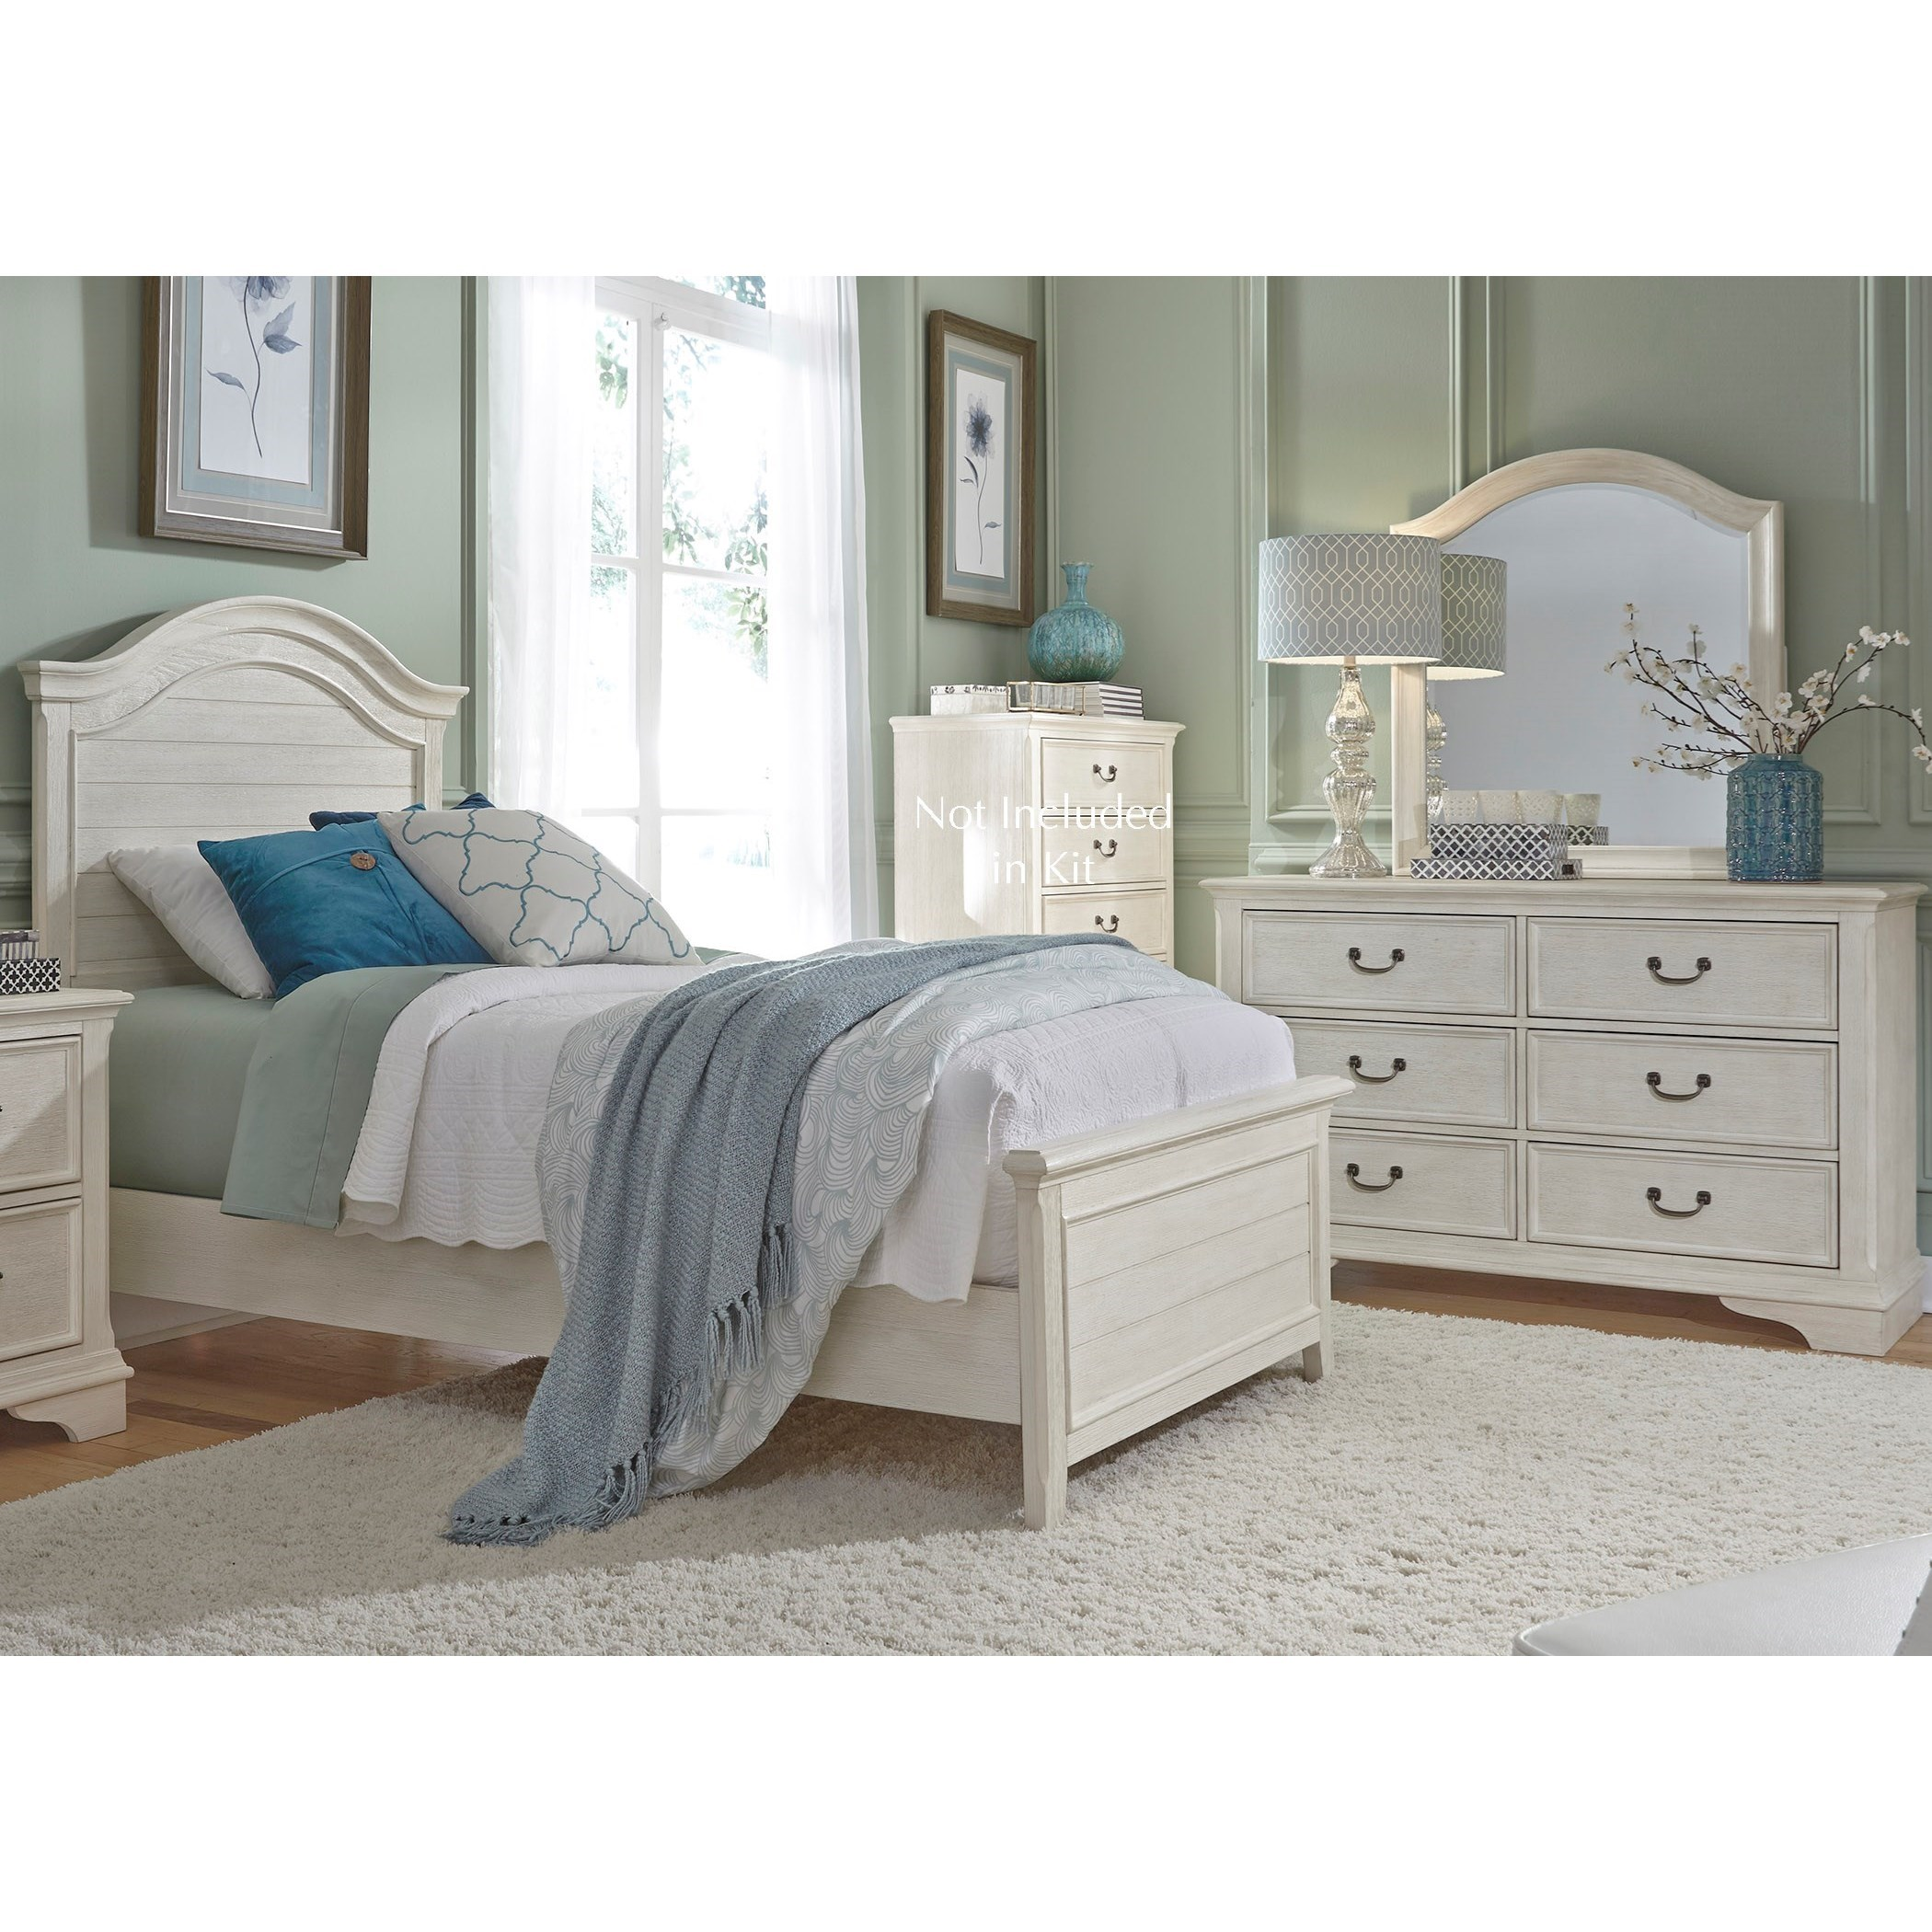 Mattress Warehouse Front Royal Va: Sarah Randolph Designs Bayside Bedroom Transitional Twin